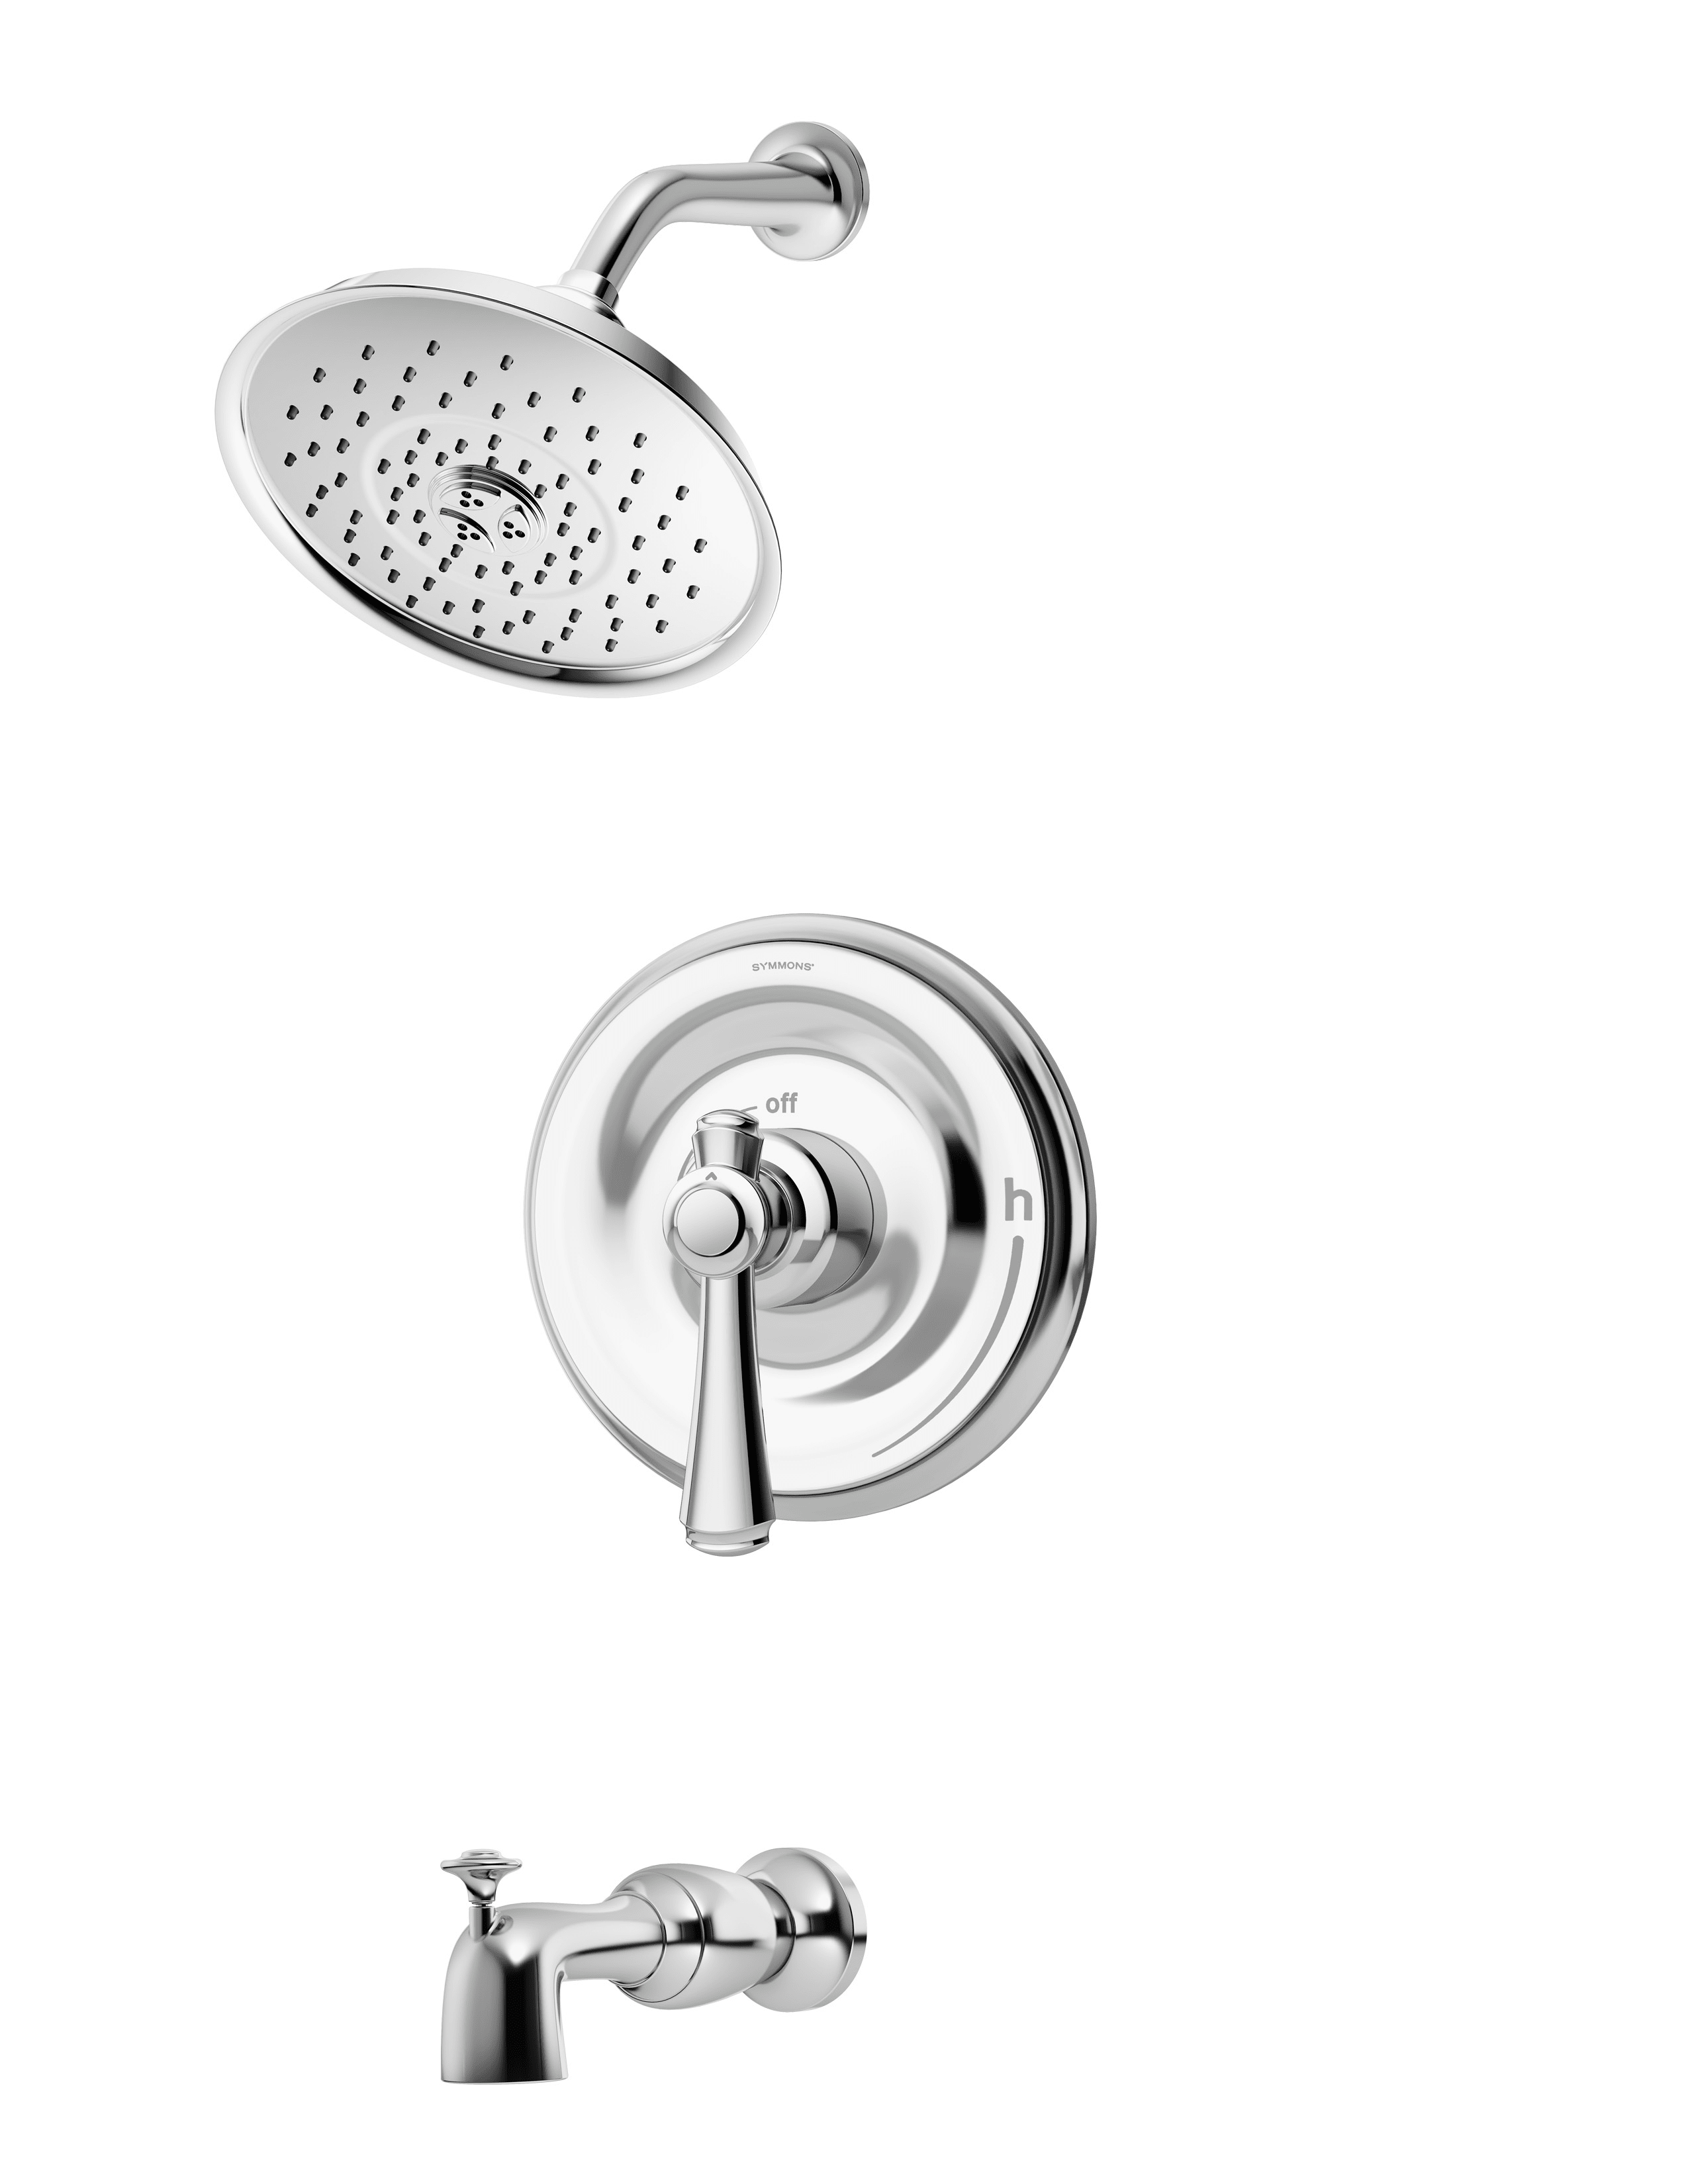 Symmons 5402 Trm Chrome Degas Tub And Shower Trim Package With Multi Function Shower Head Less Rough In Valve Faucet Com